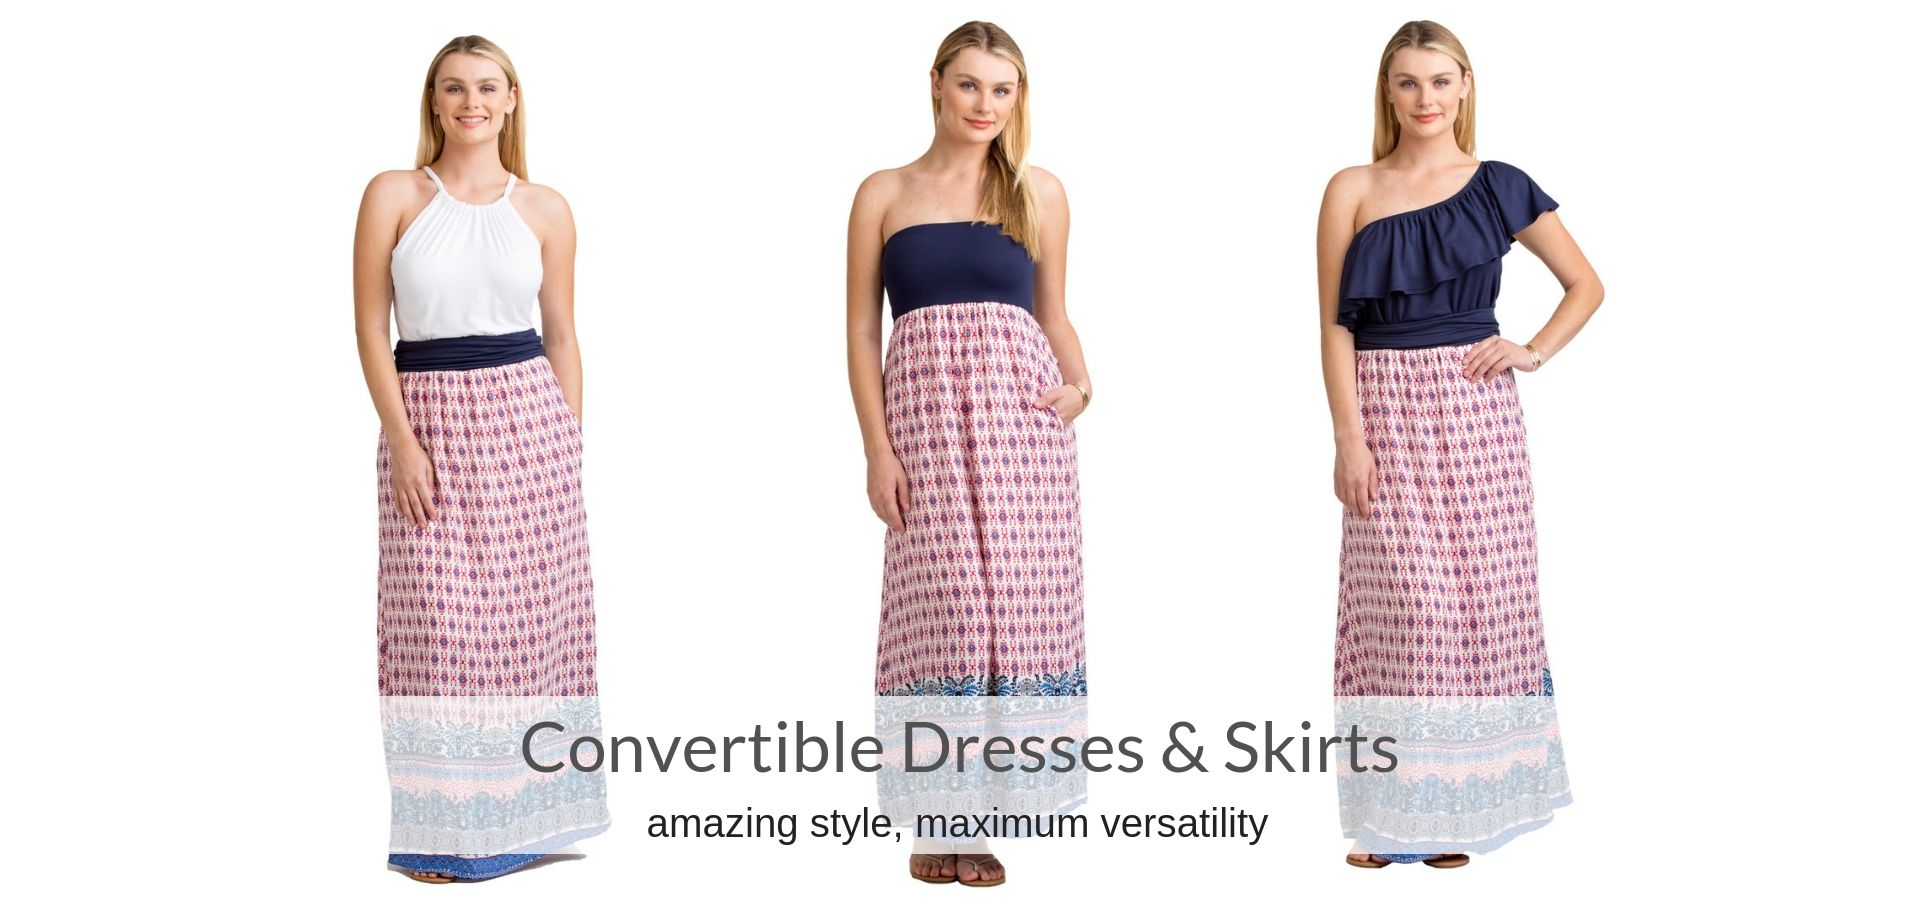 Vacay Convertible Dresses and Skirts